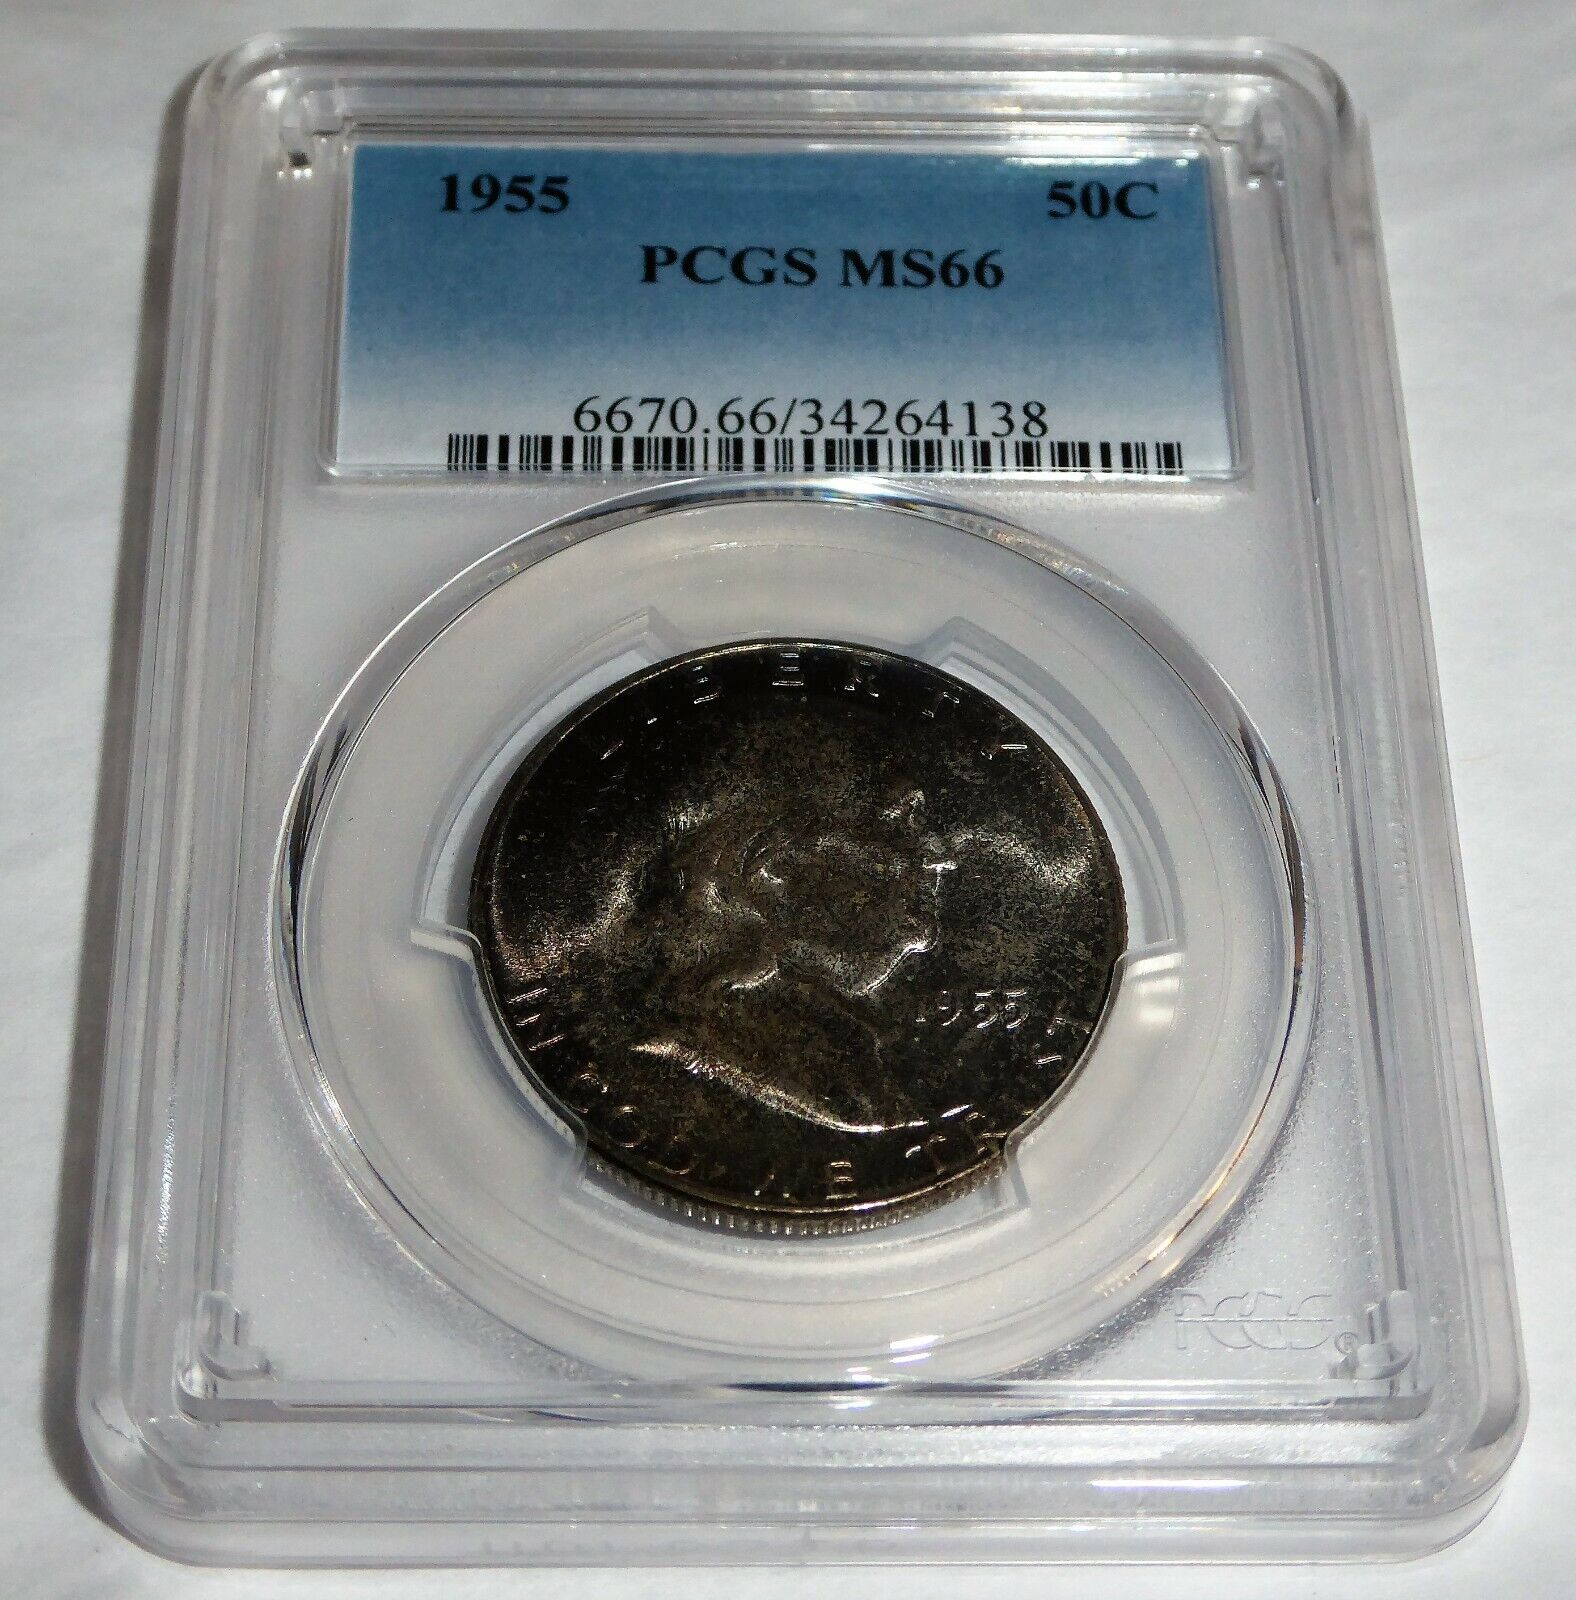 1955 50C PCGS MS66 Franklin Half Dollar 50 Cent Coin 💎